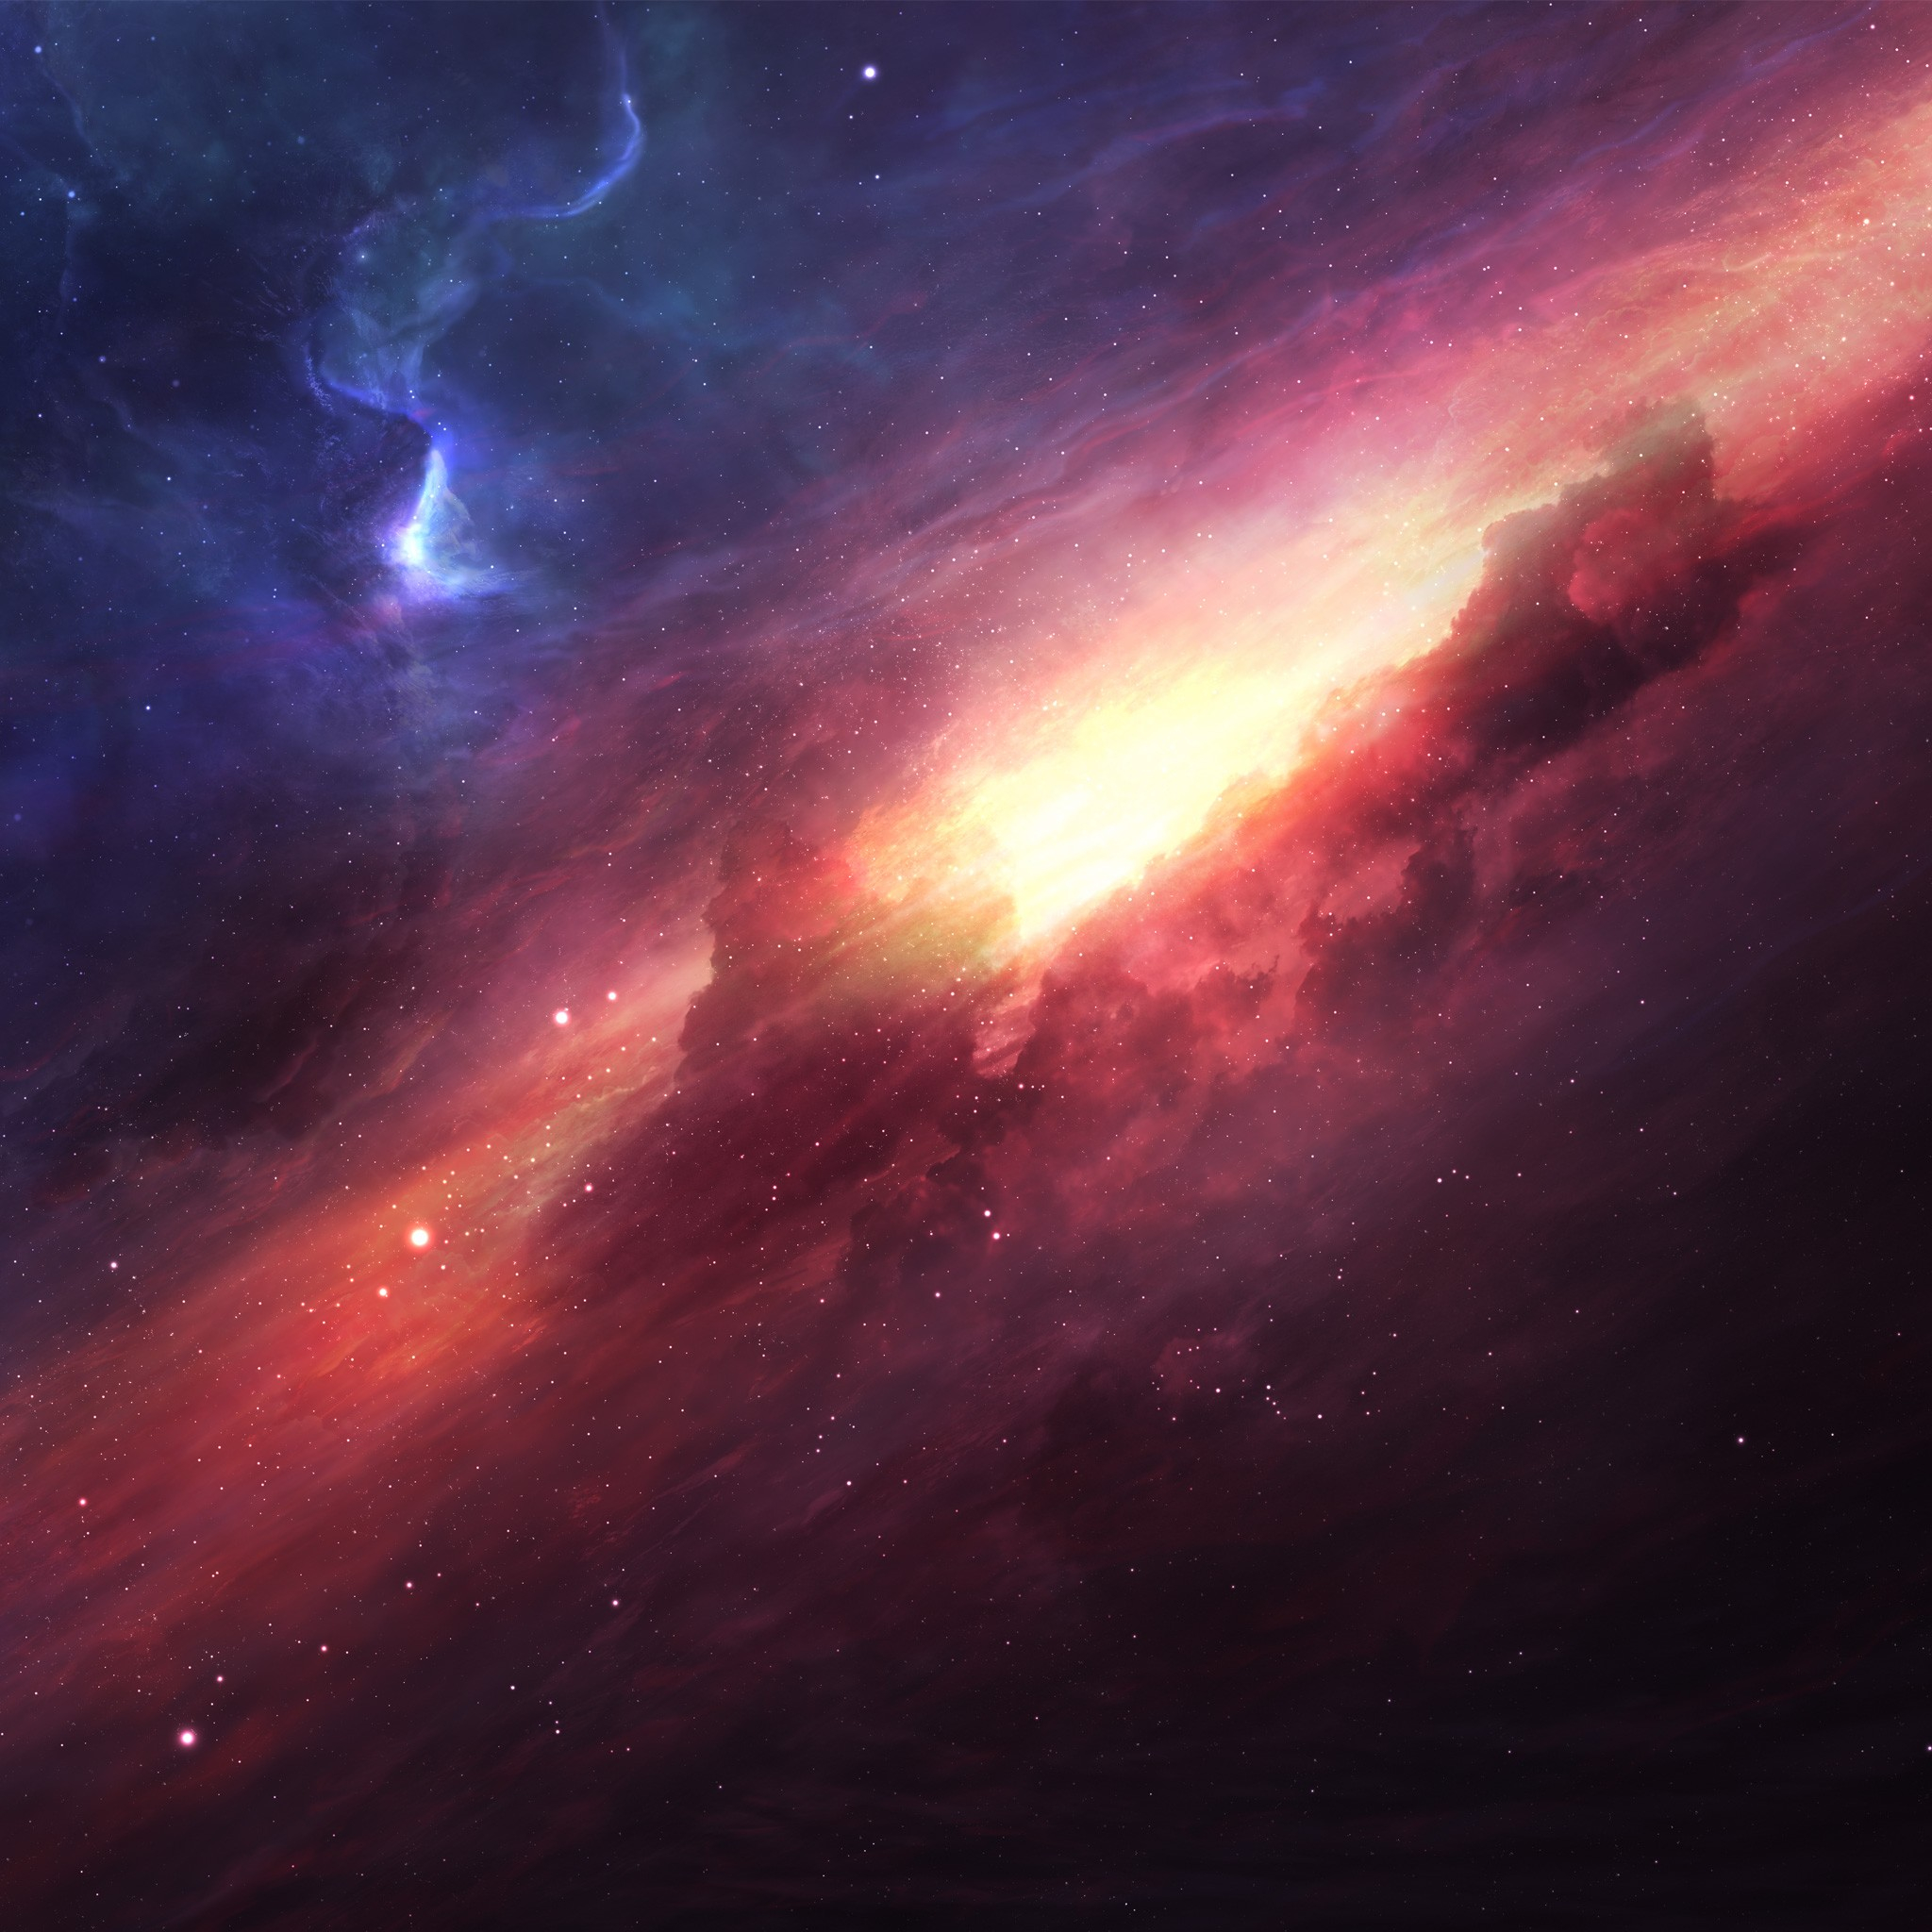 digital space universe 4k 8k wallpapers